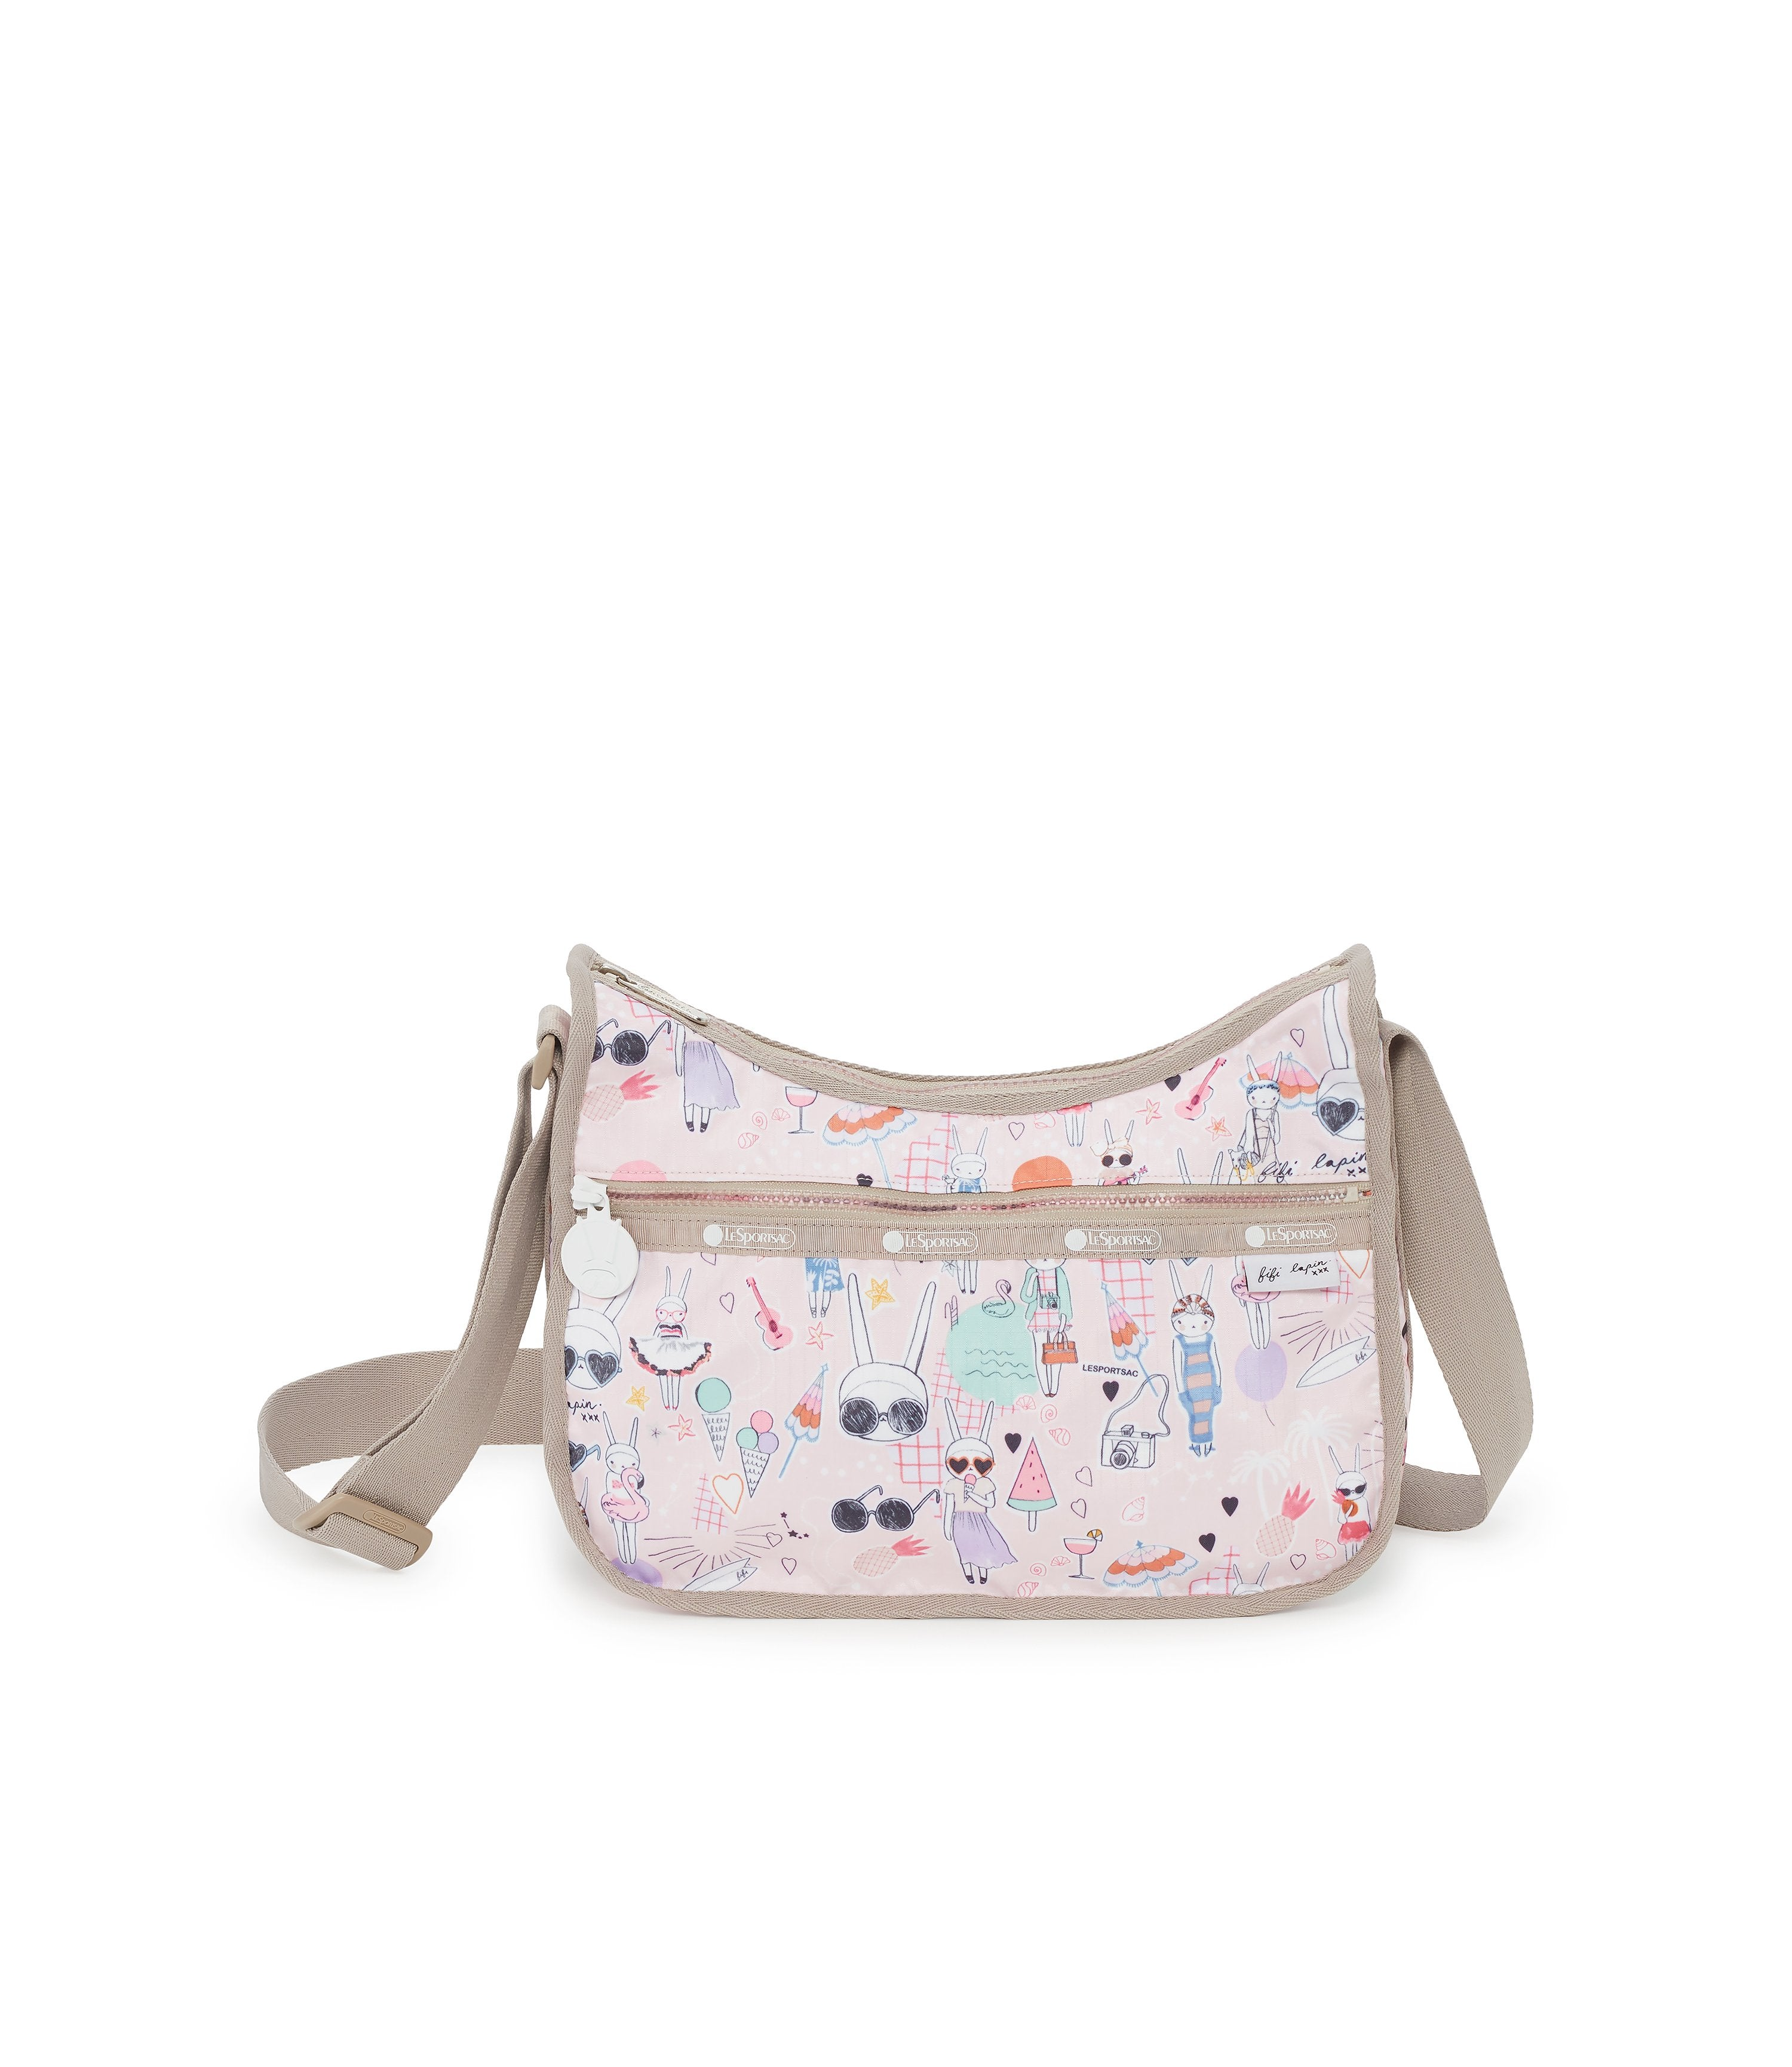 Classic Hobo, Nylon Handbags and Classic Purses, Fifi Lapin, Bunny, Fifi Pool Party print